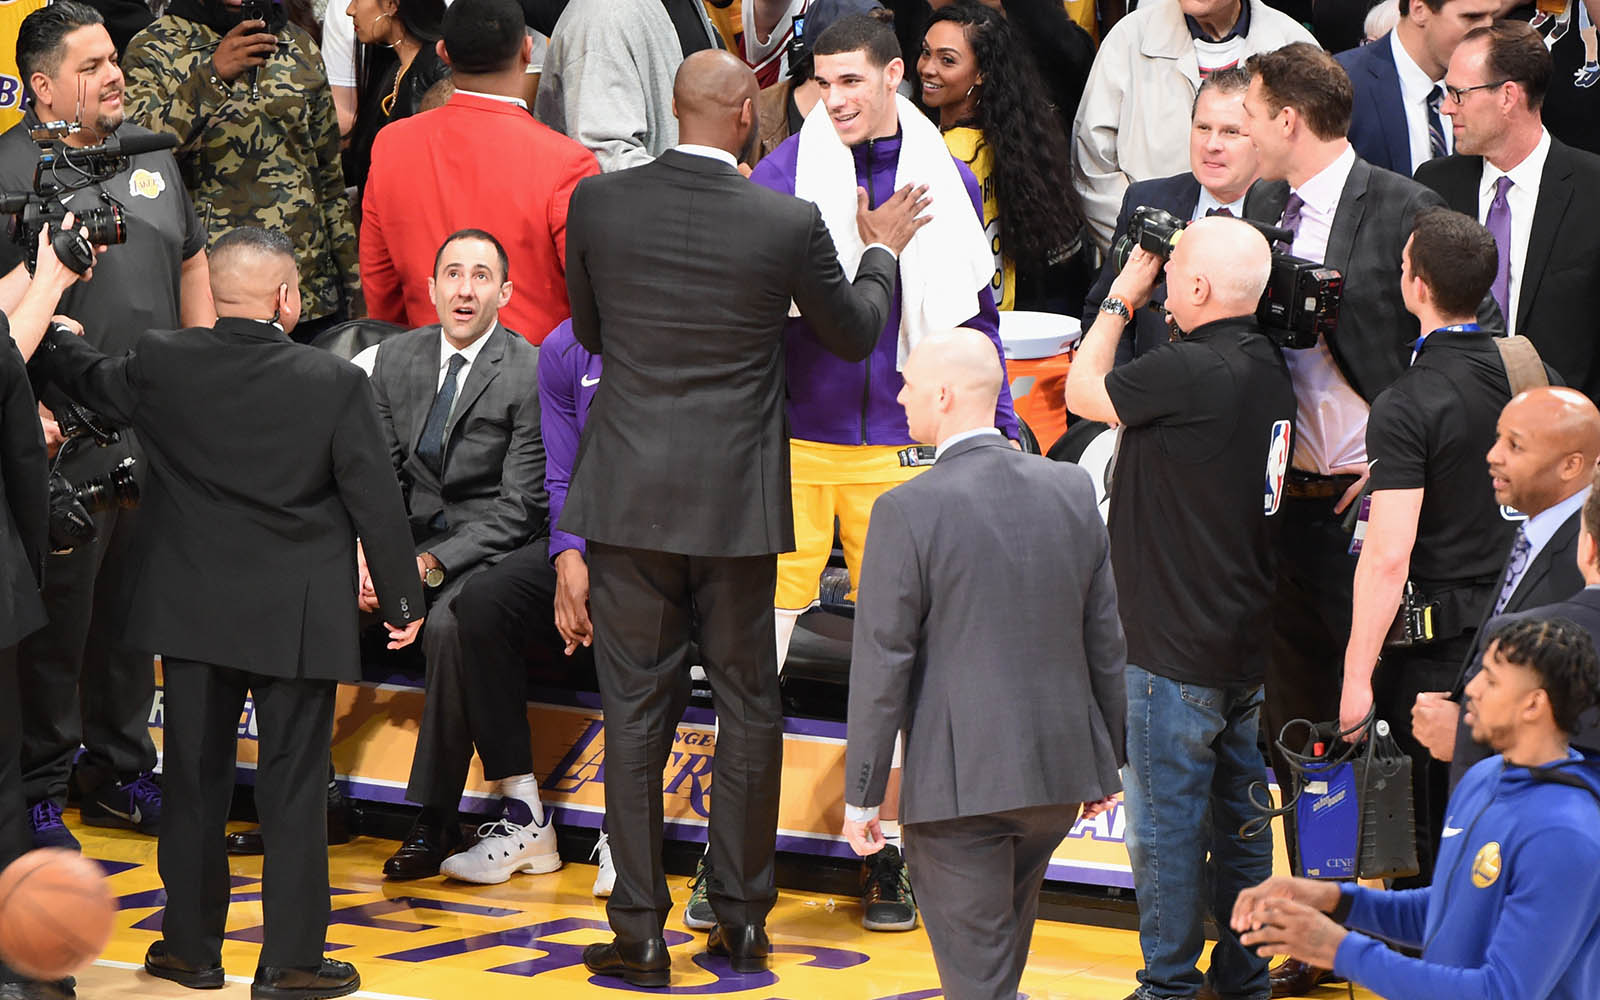 Warriors embrace playing second fiddle to Kobe for one final night